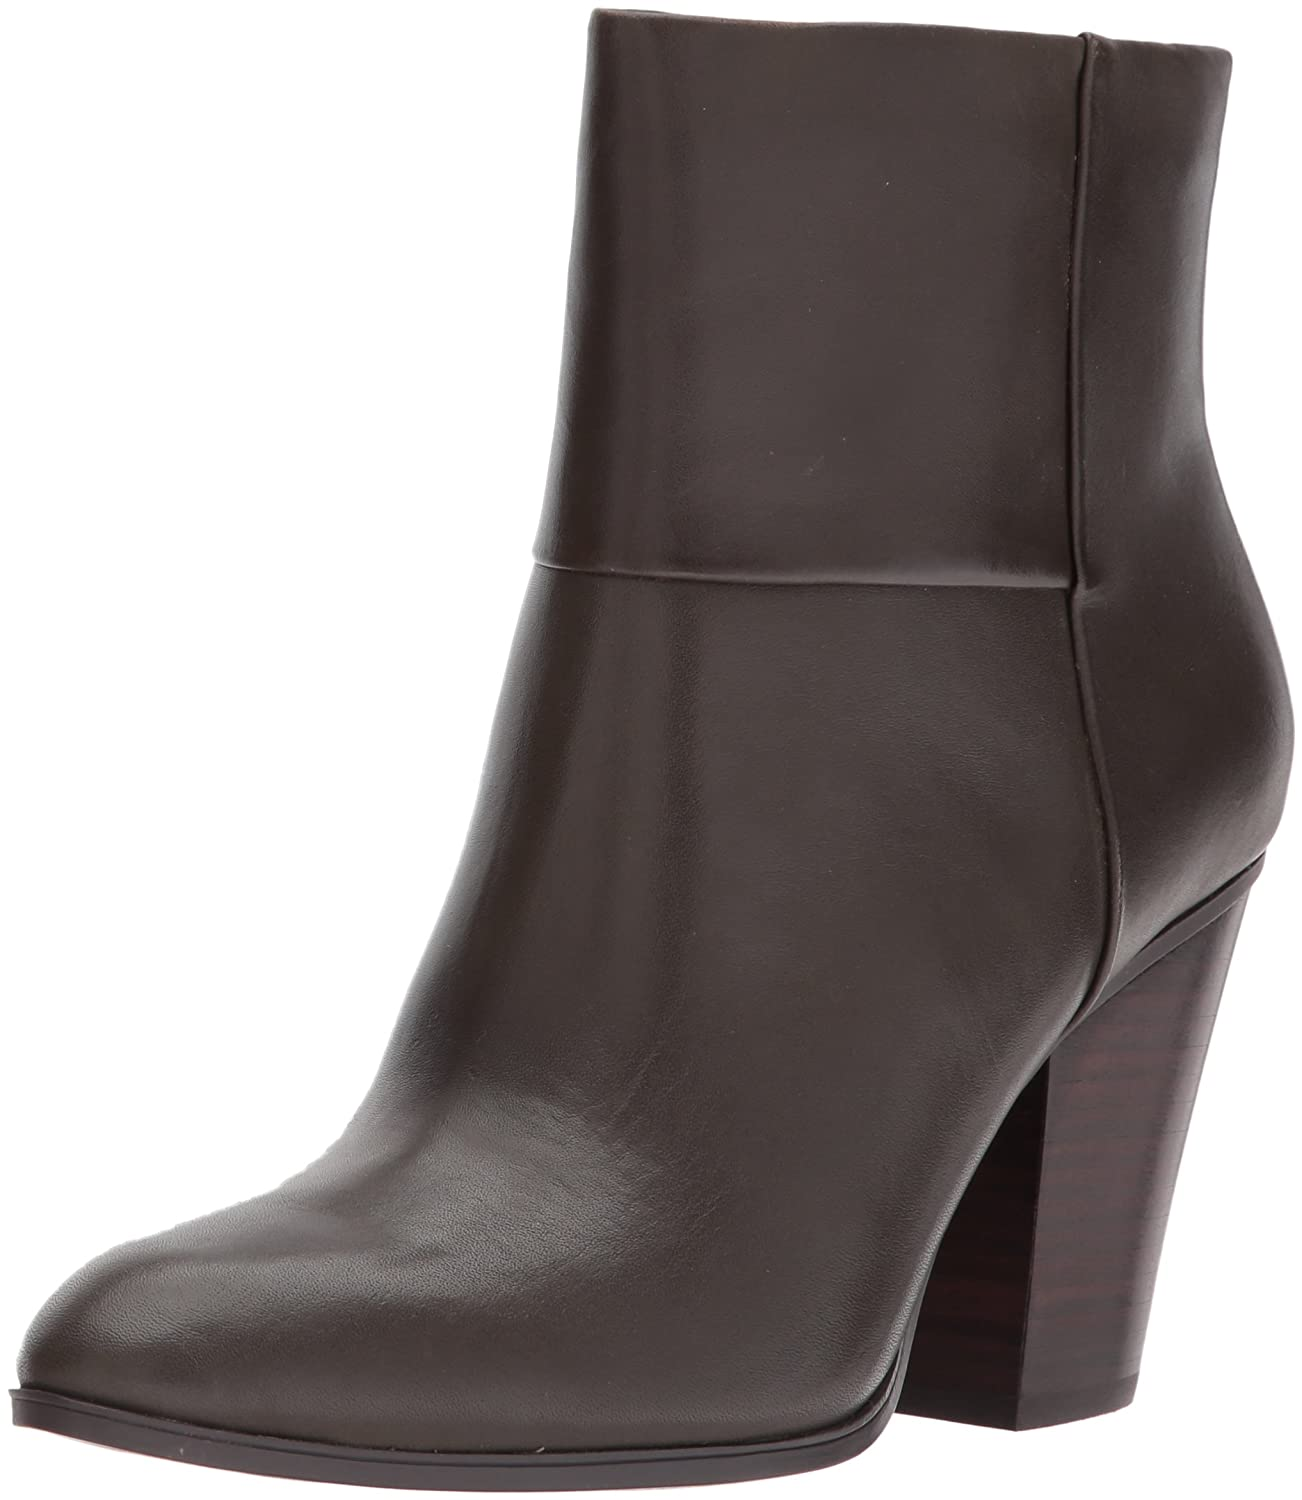 Nine West Women's Hollie Leather Ankle Boot B0719DDVPX 8.5 B(M) US|Natural Leather Leather